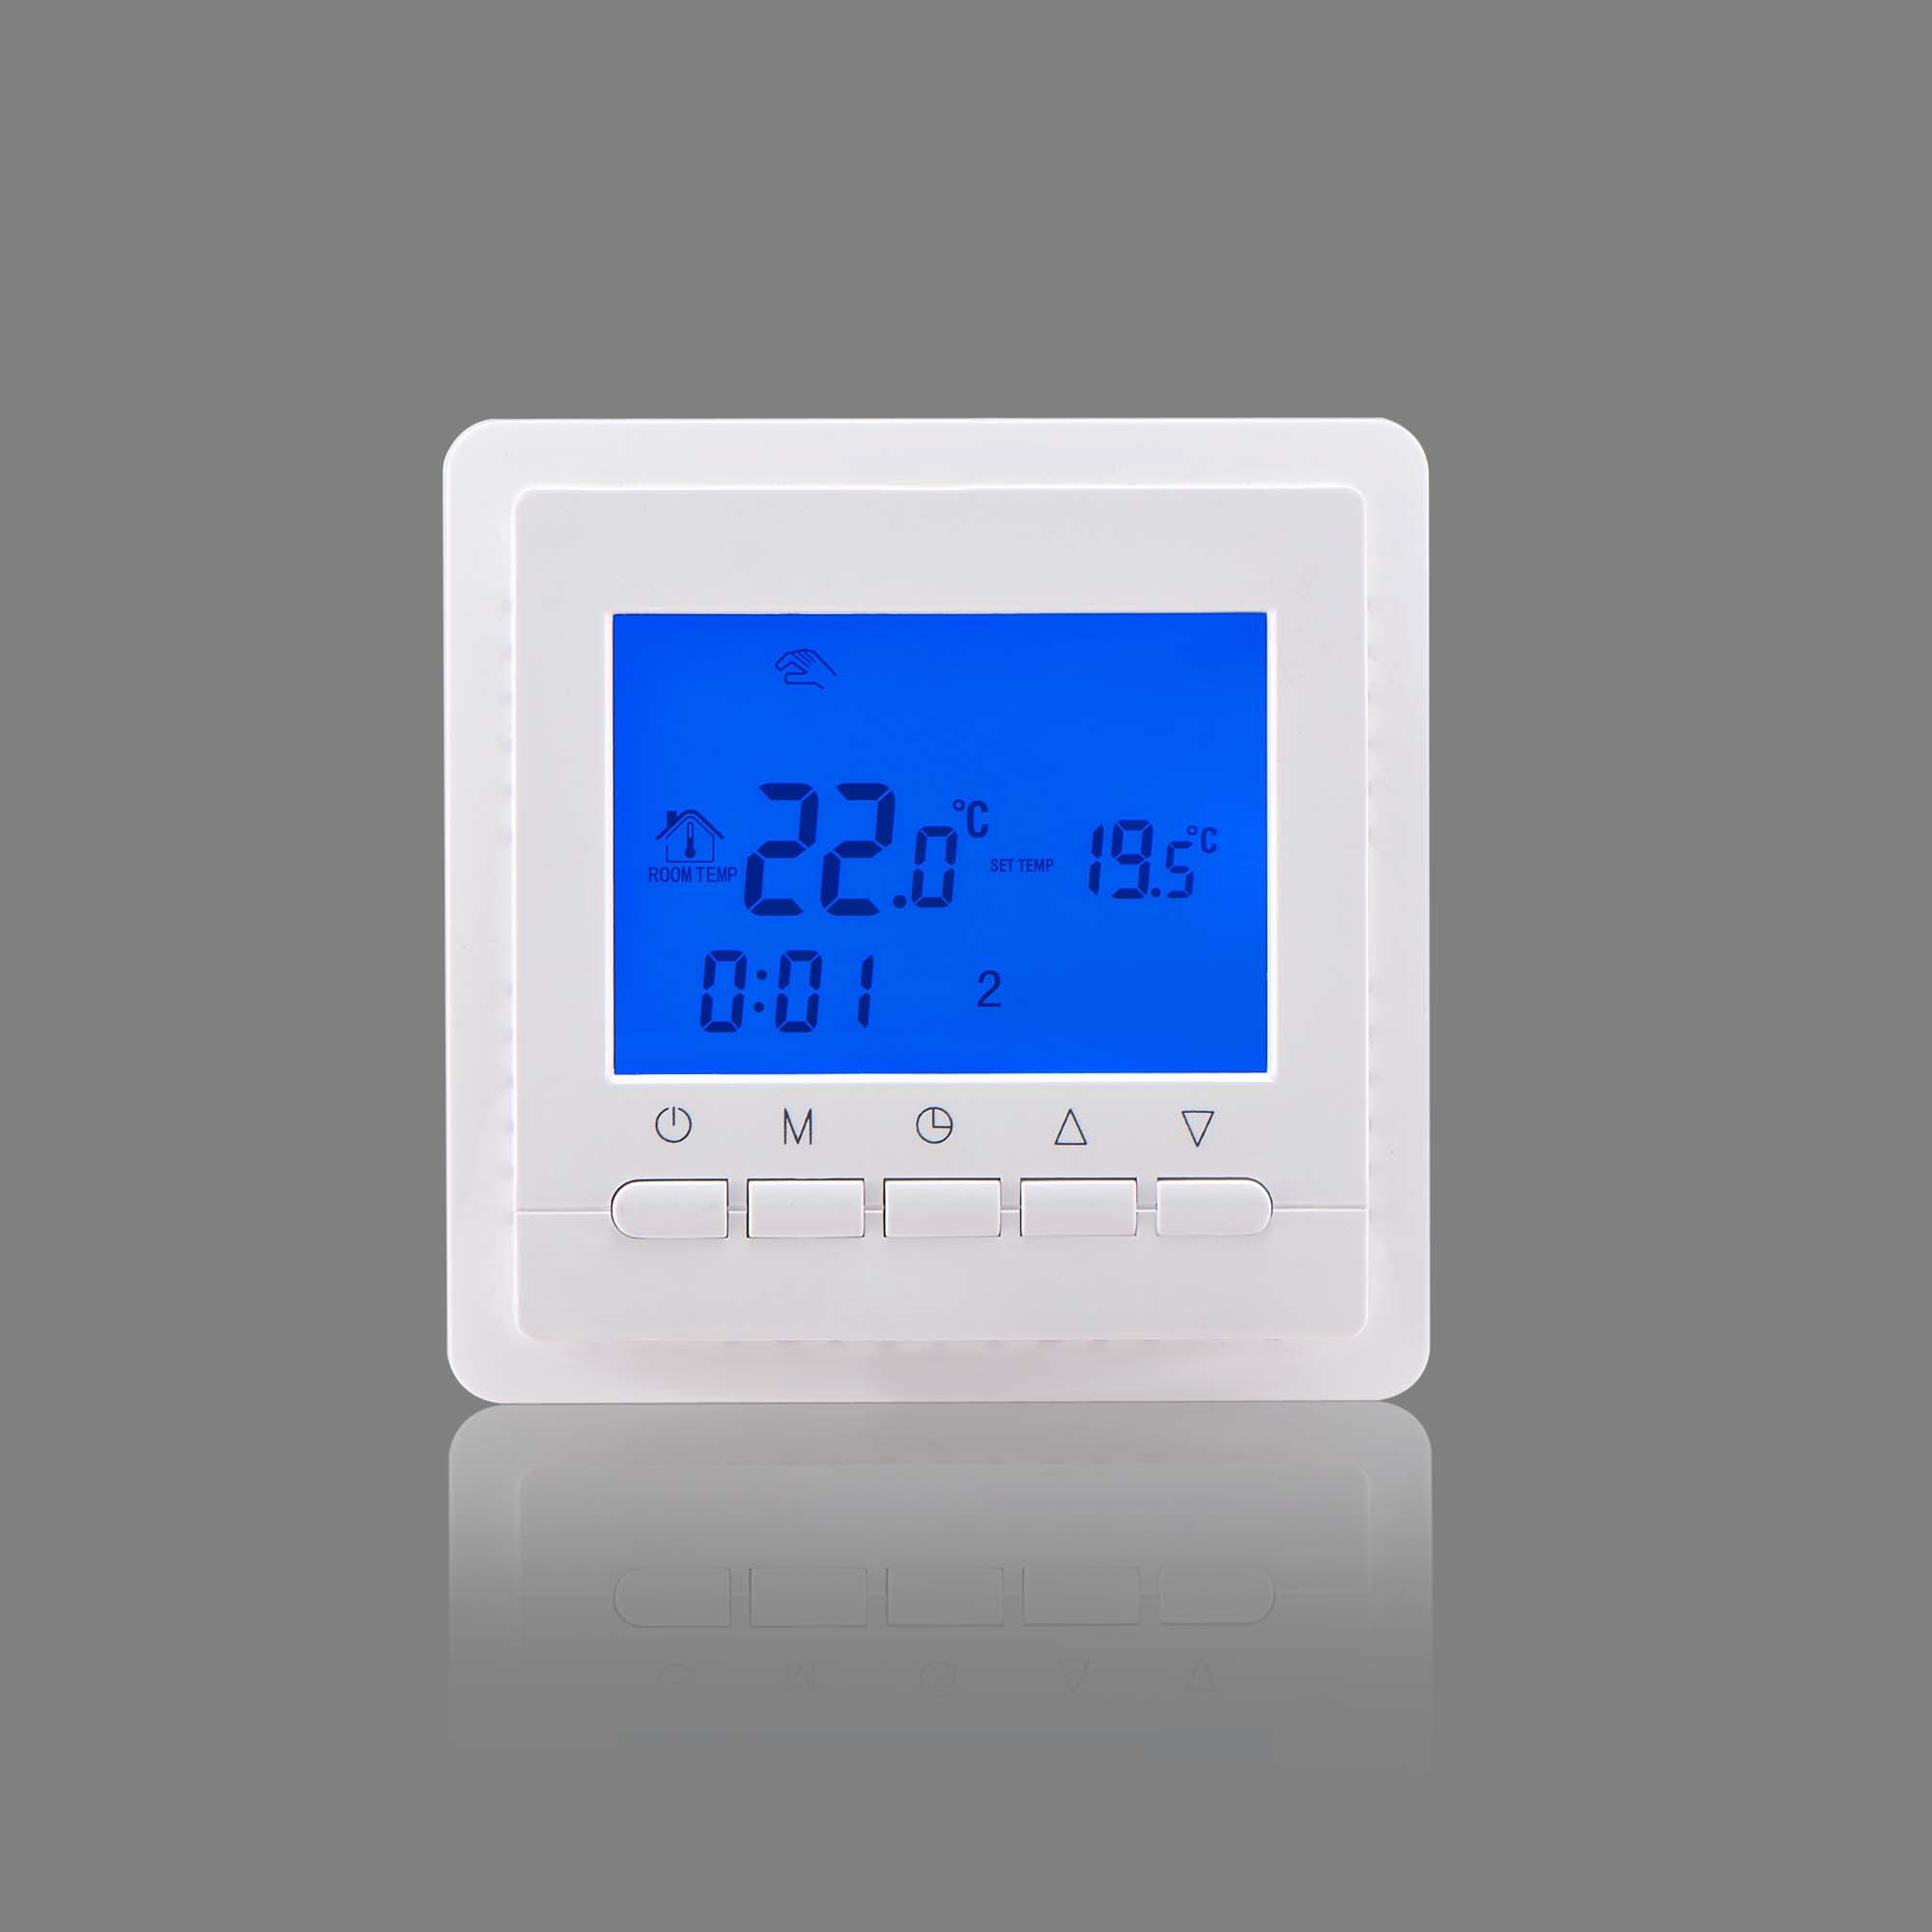 16A Warm Floor digital weekly programmable Thermostat Temperature Controller underfloor heating Thermometer  LCD Display сумка с полной запечаткой printio суп кэмпбелл